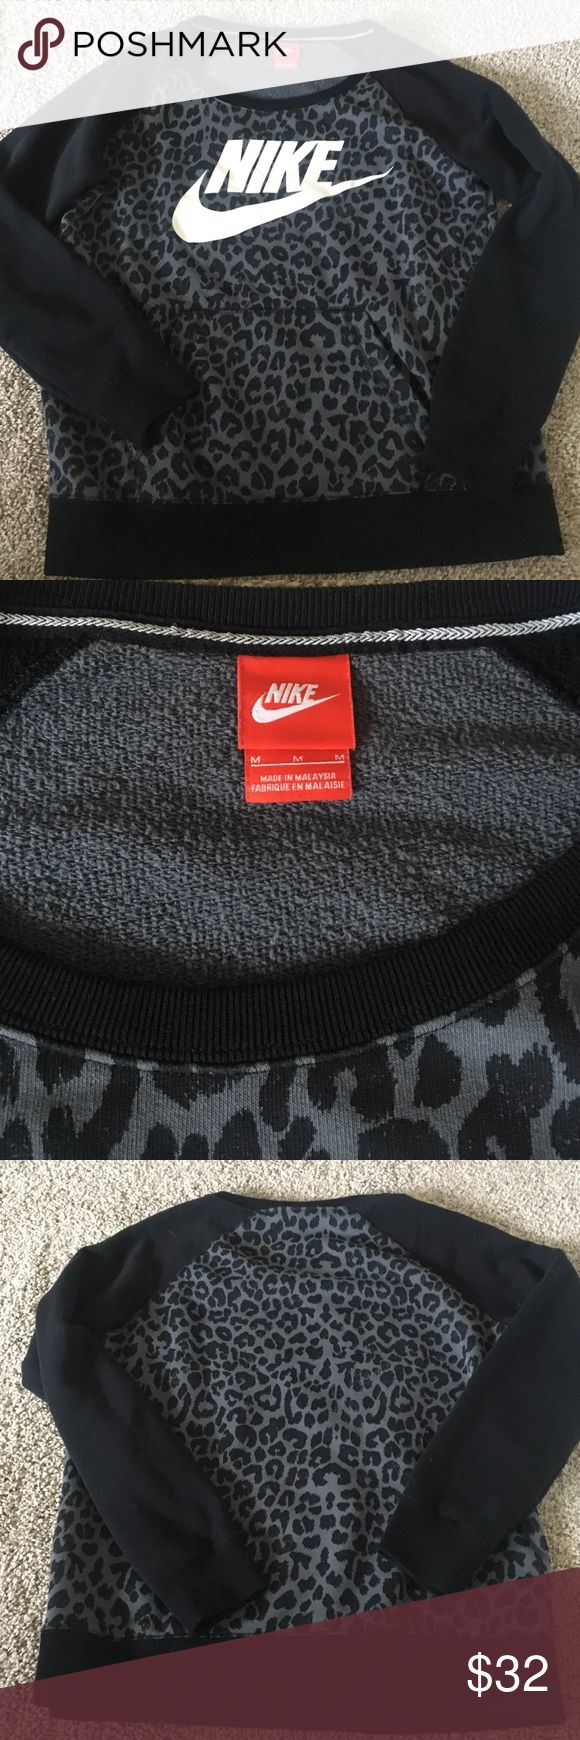 Nike crew neck sweatshirt size M Nike leopard print crew neck sweatshirt. Super comfy to wear over your workout clothes or just casually! In excellent condition Nike Tops Sweatshirts & Hoodies